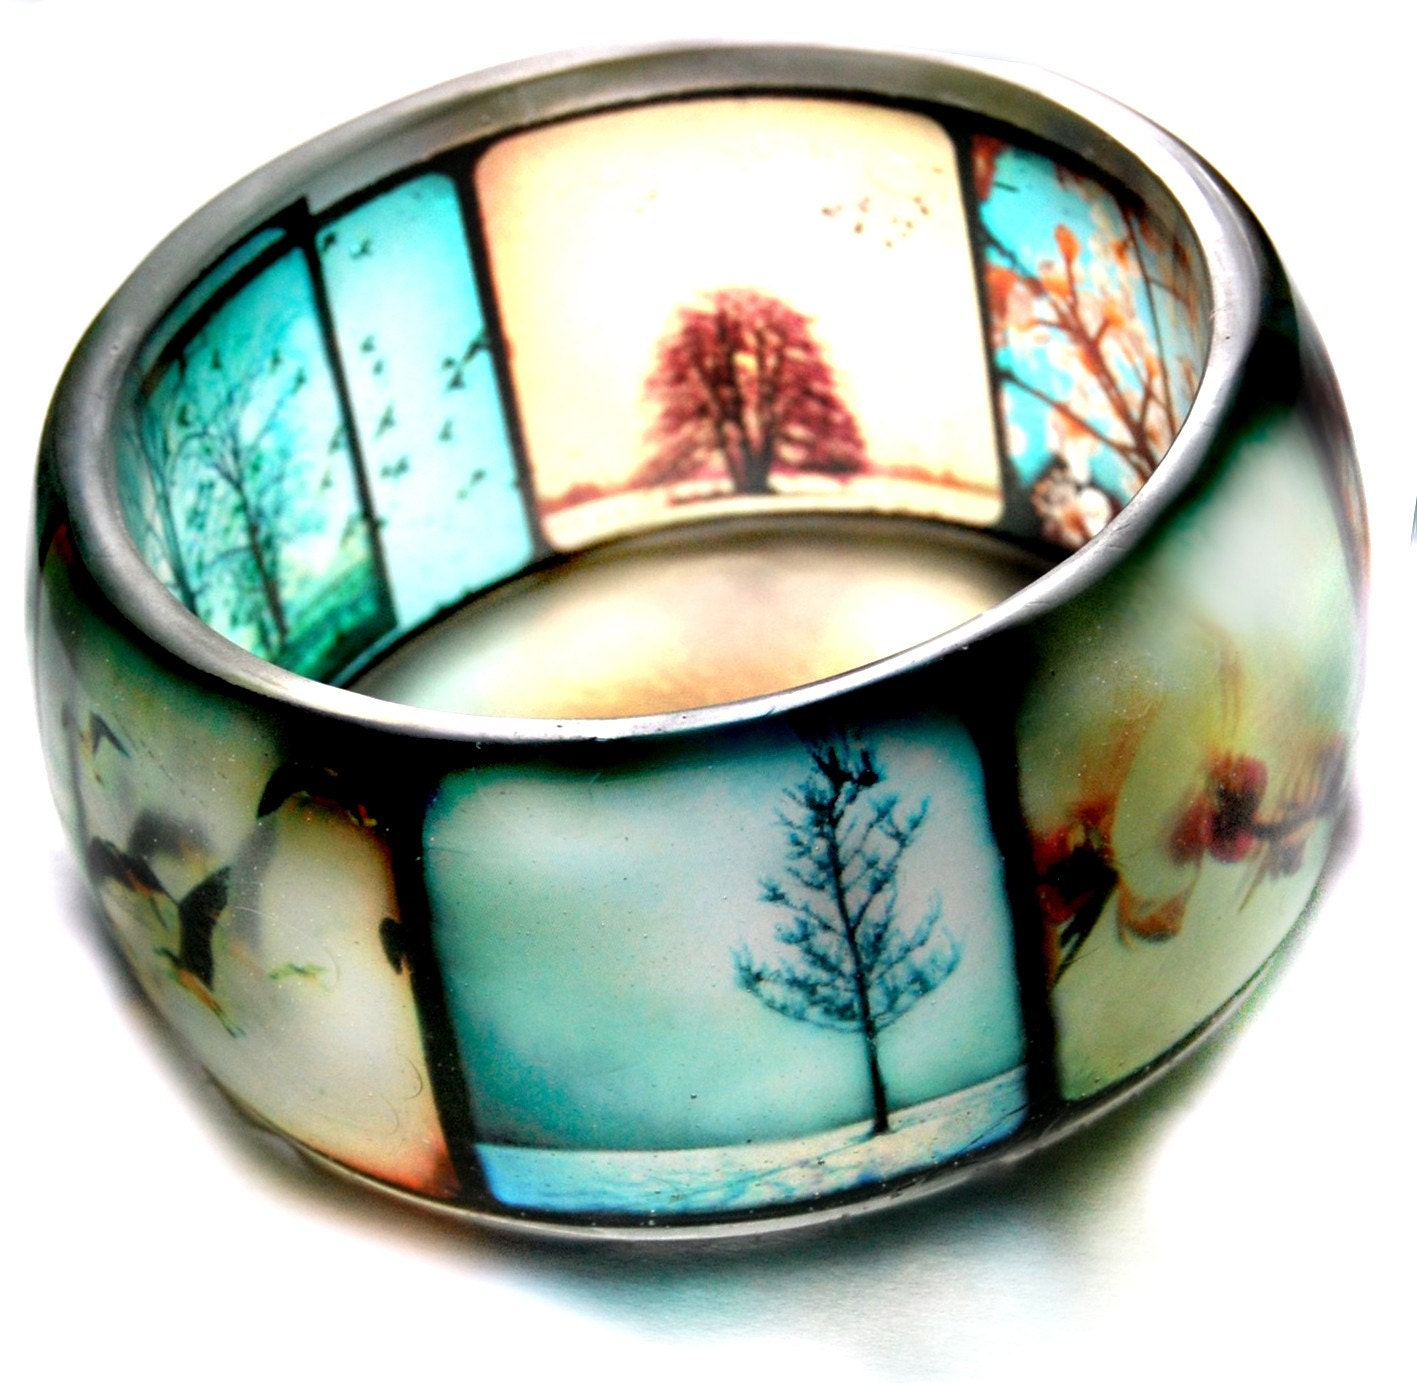 ttv viewfinder hand cast resin bangle bracelet -- made to order - Please read full description before purchasing